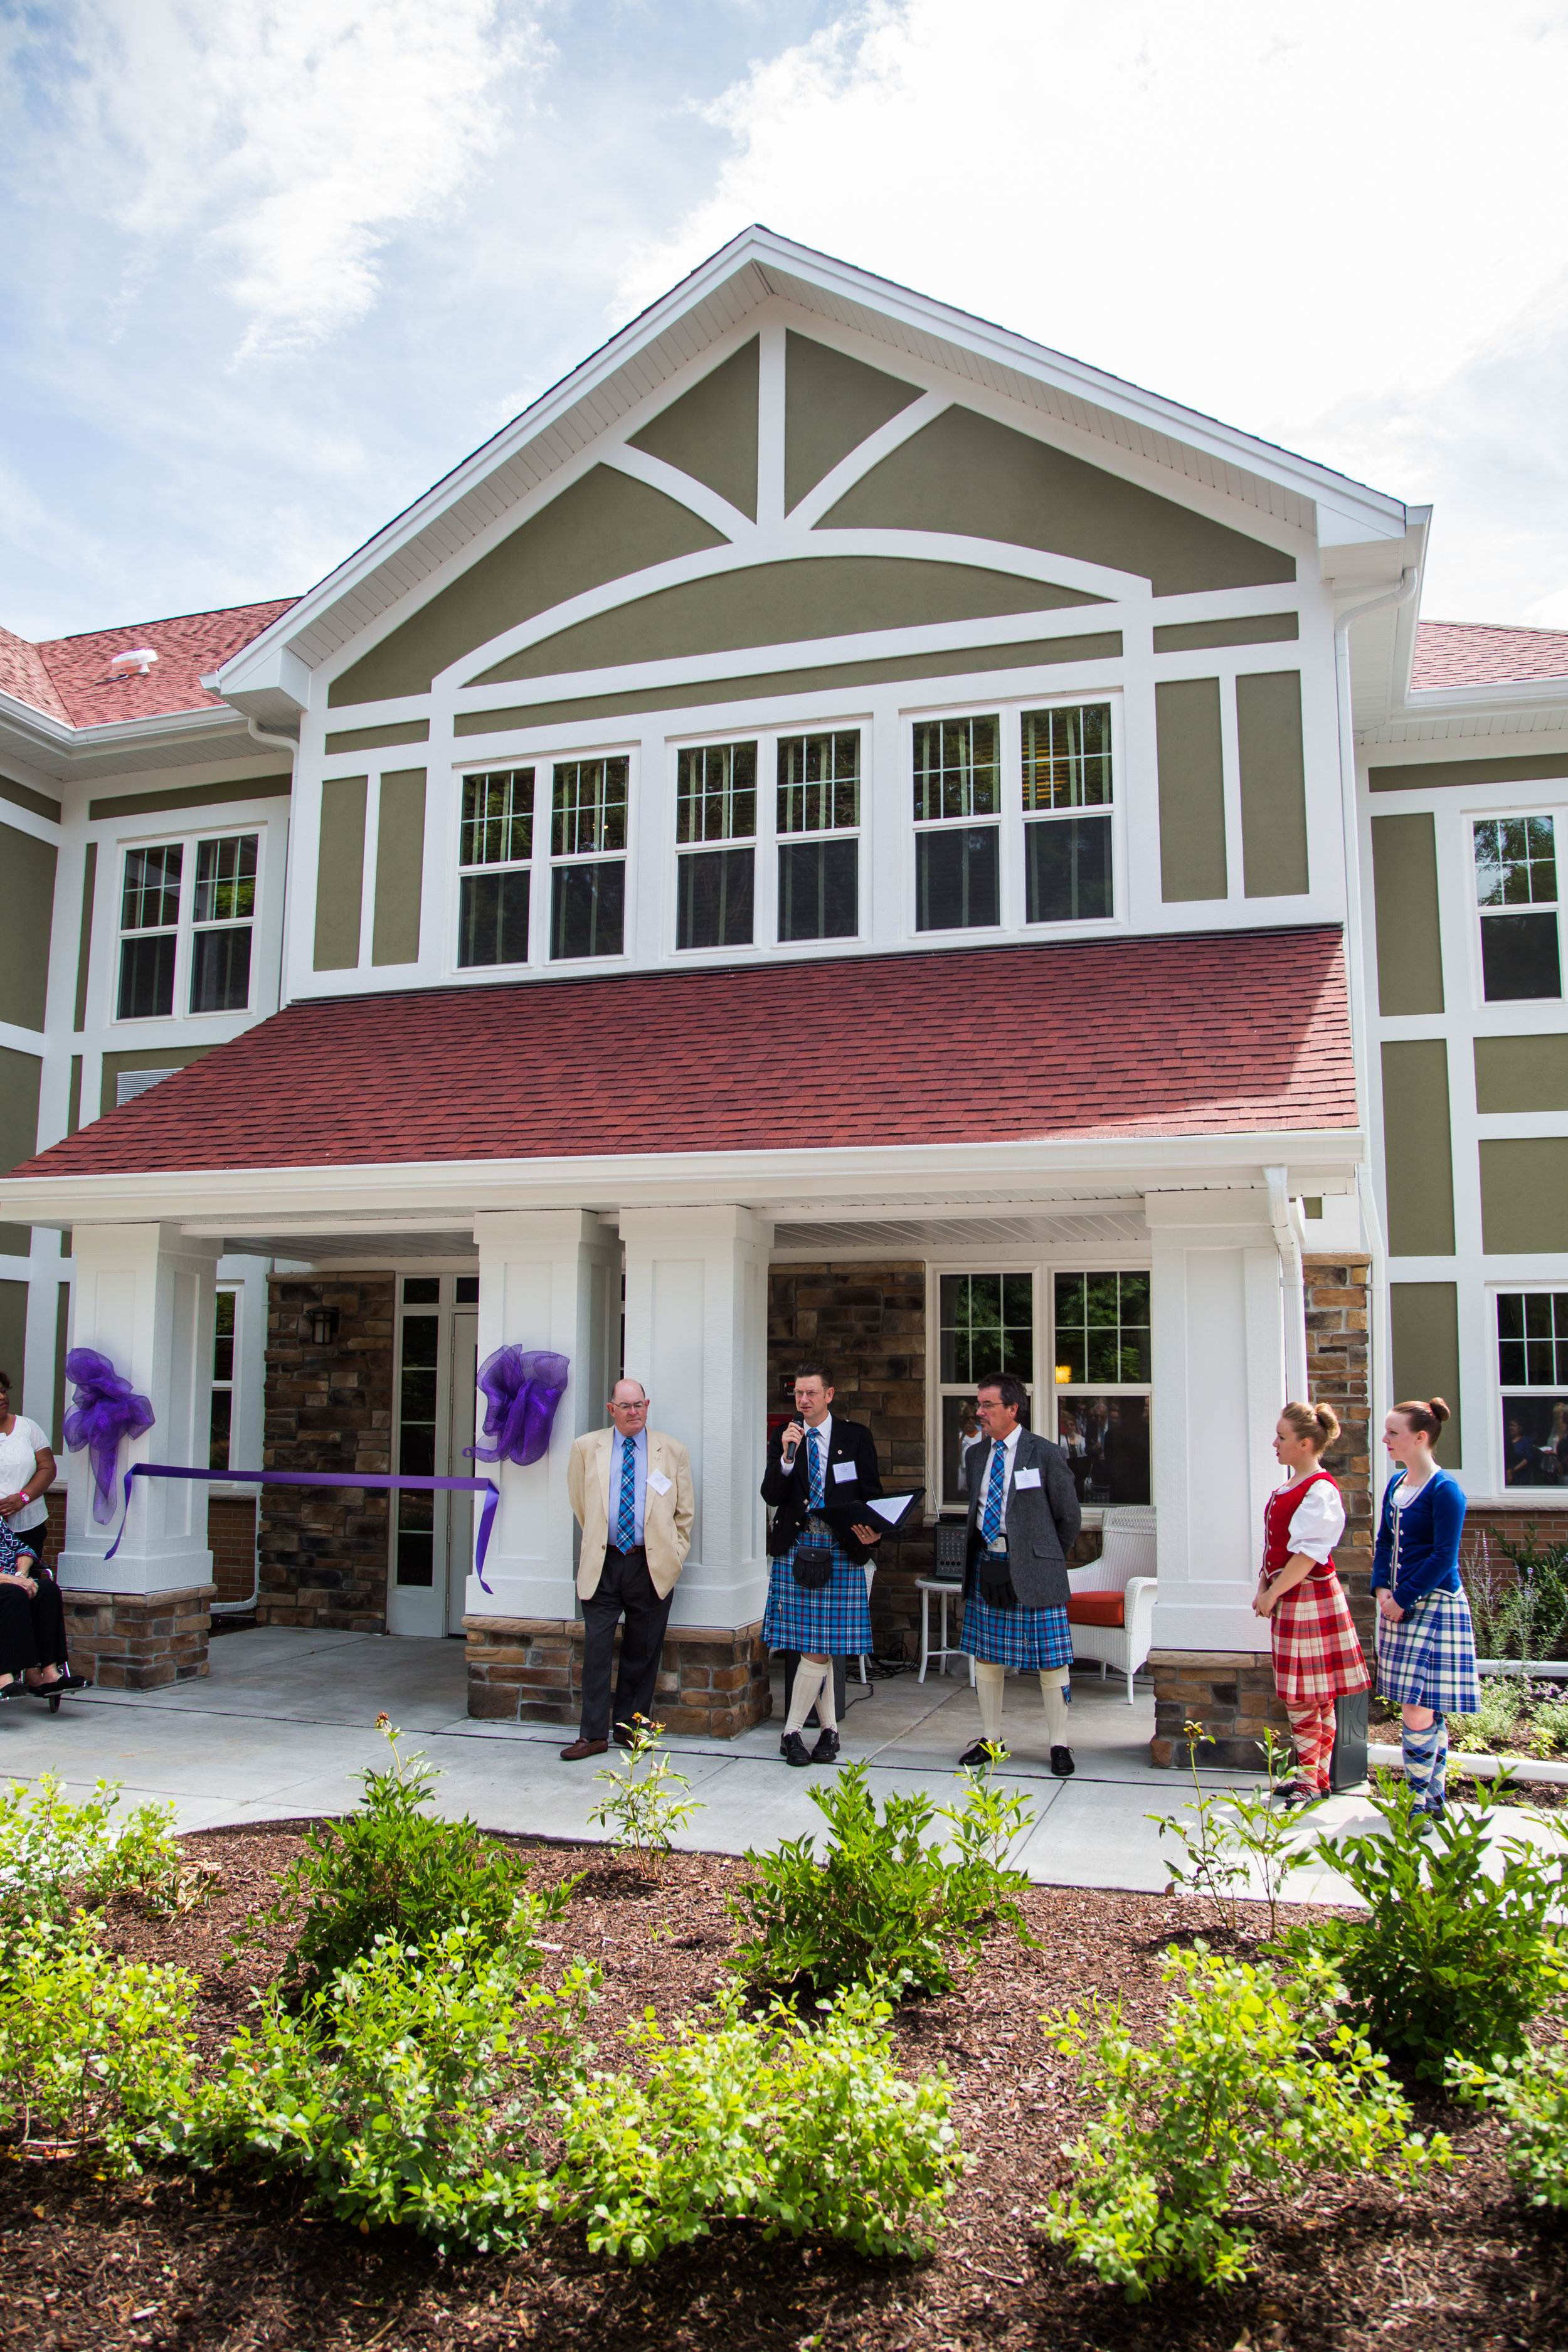 160713-The-Caledonian-House-Ribbon-Cutting-025.jpg